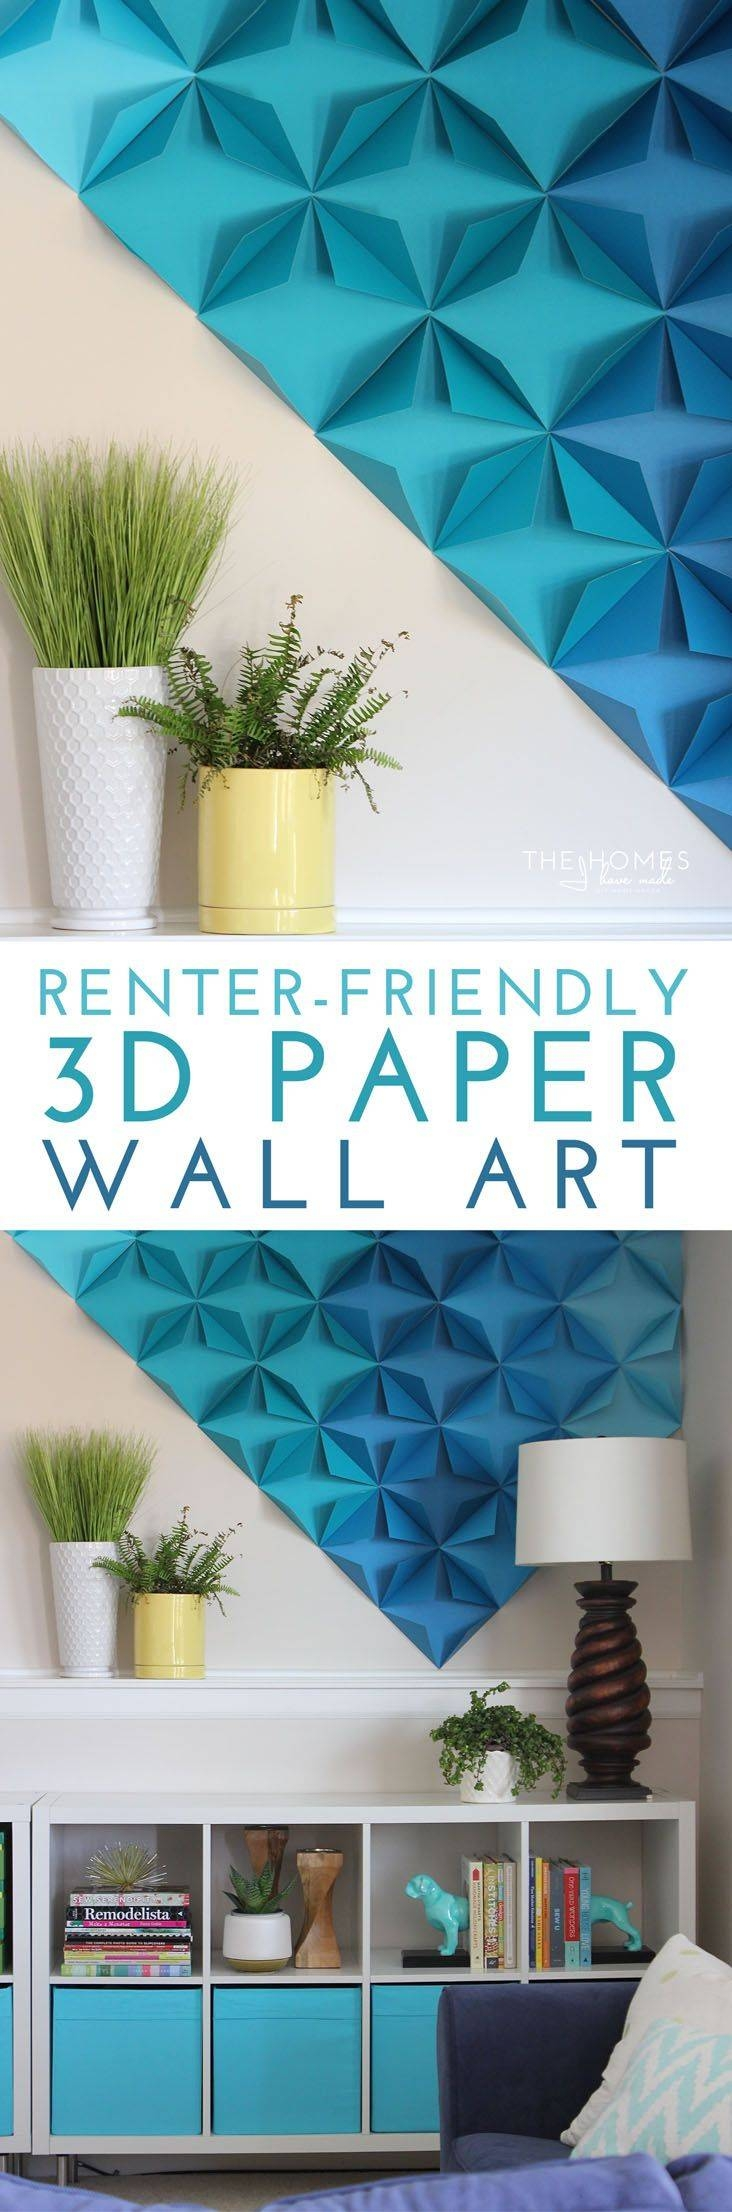 25+ Unique 3D Wall Art Ideas On Pinterest | Butterfly Wall, Diy For Recent Diy 3D Paper Wall Art (View 1 of 20)